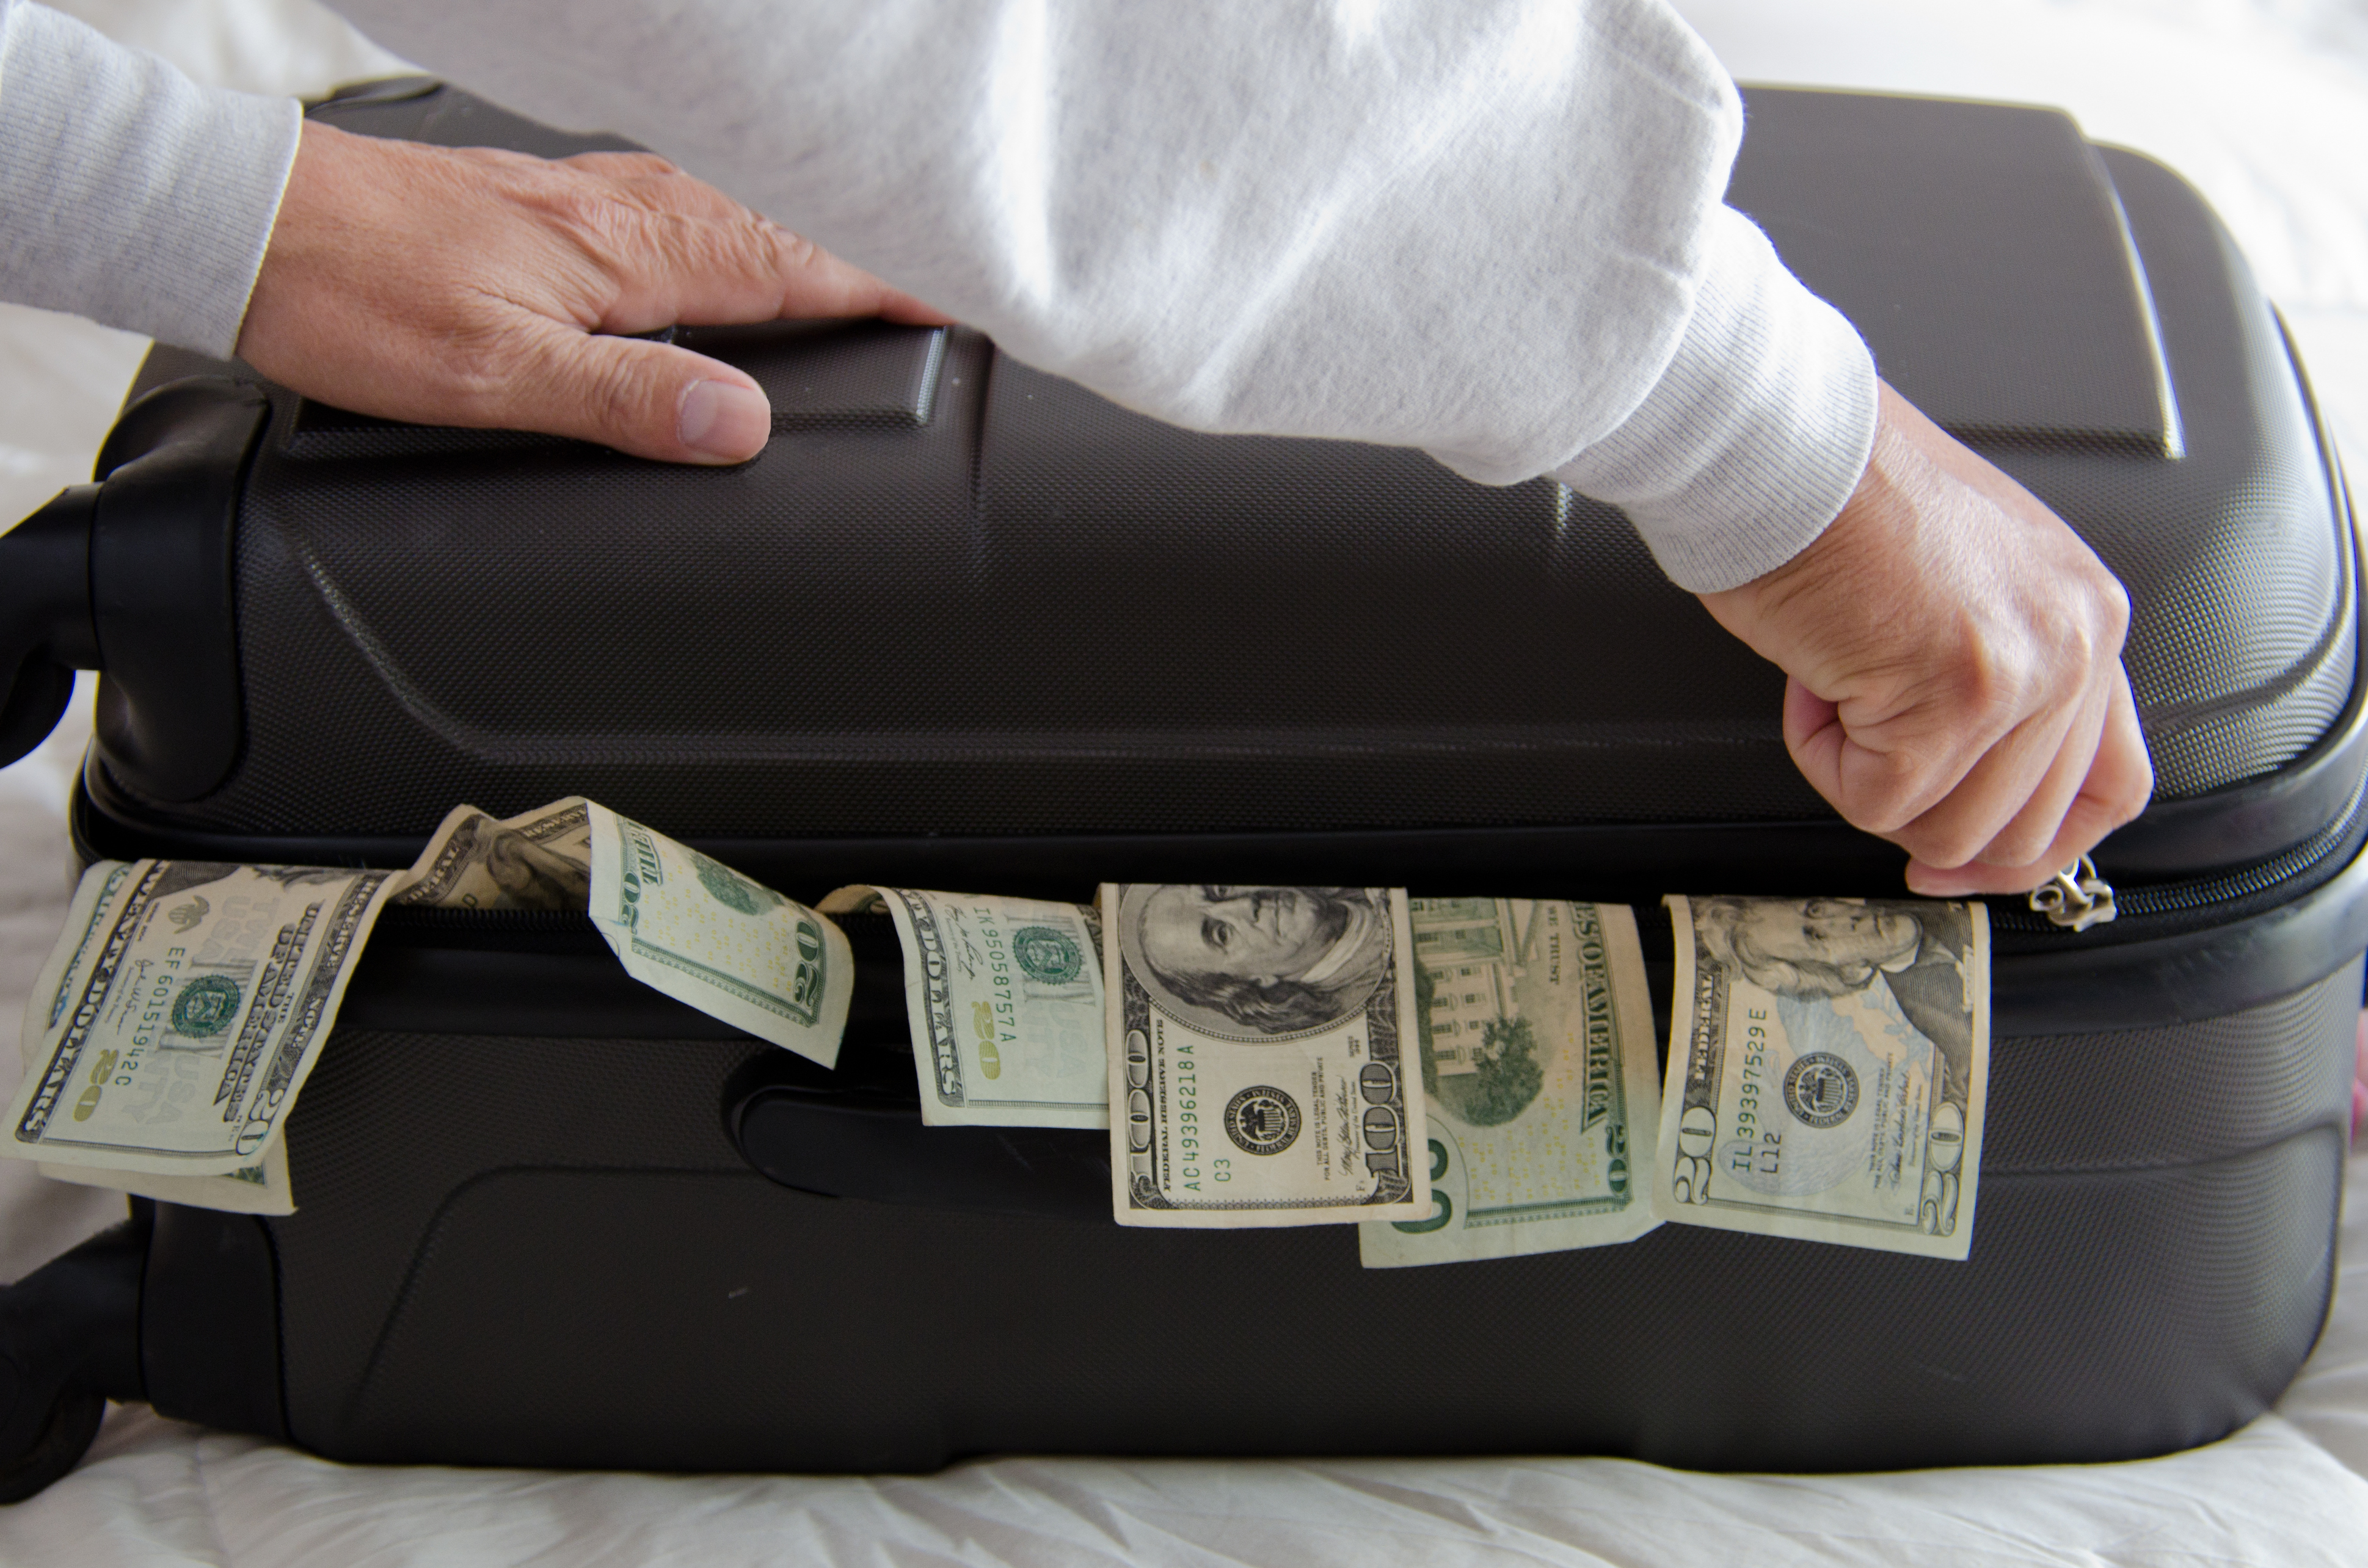 A Suitcase Full of Money